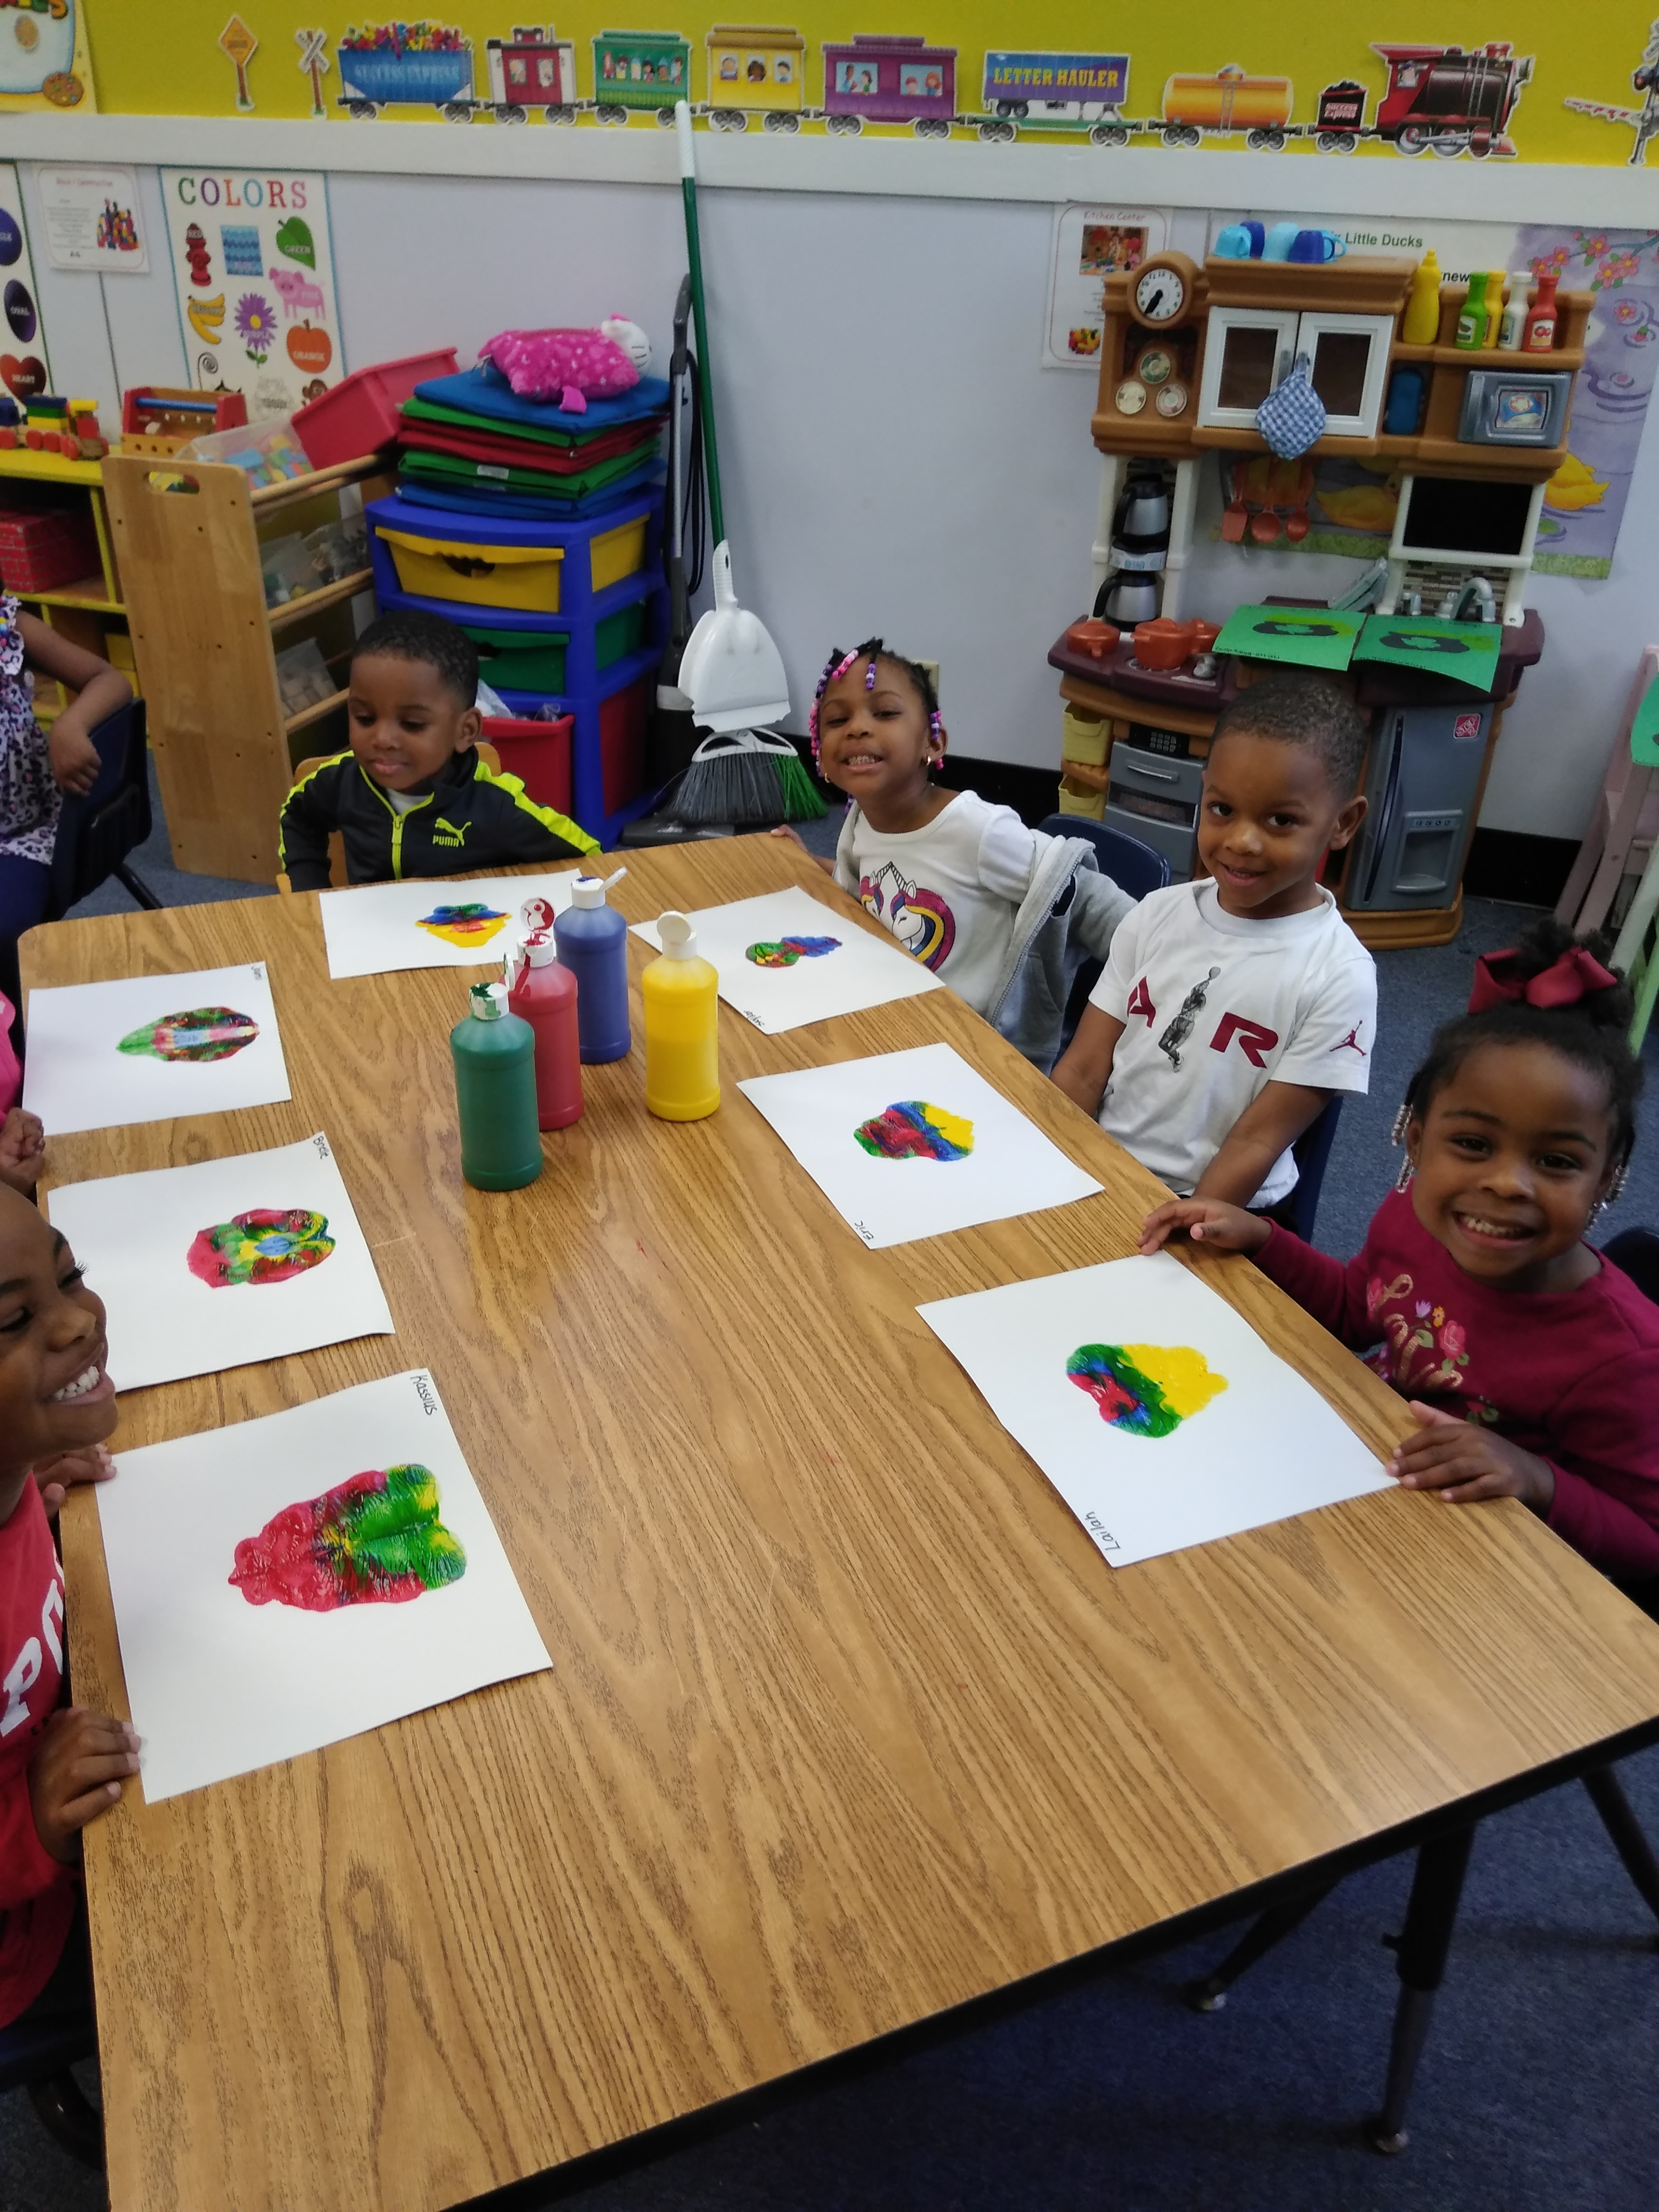 Rosby's Learning Childcare Center